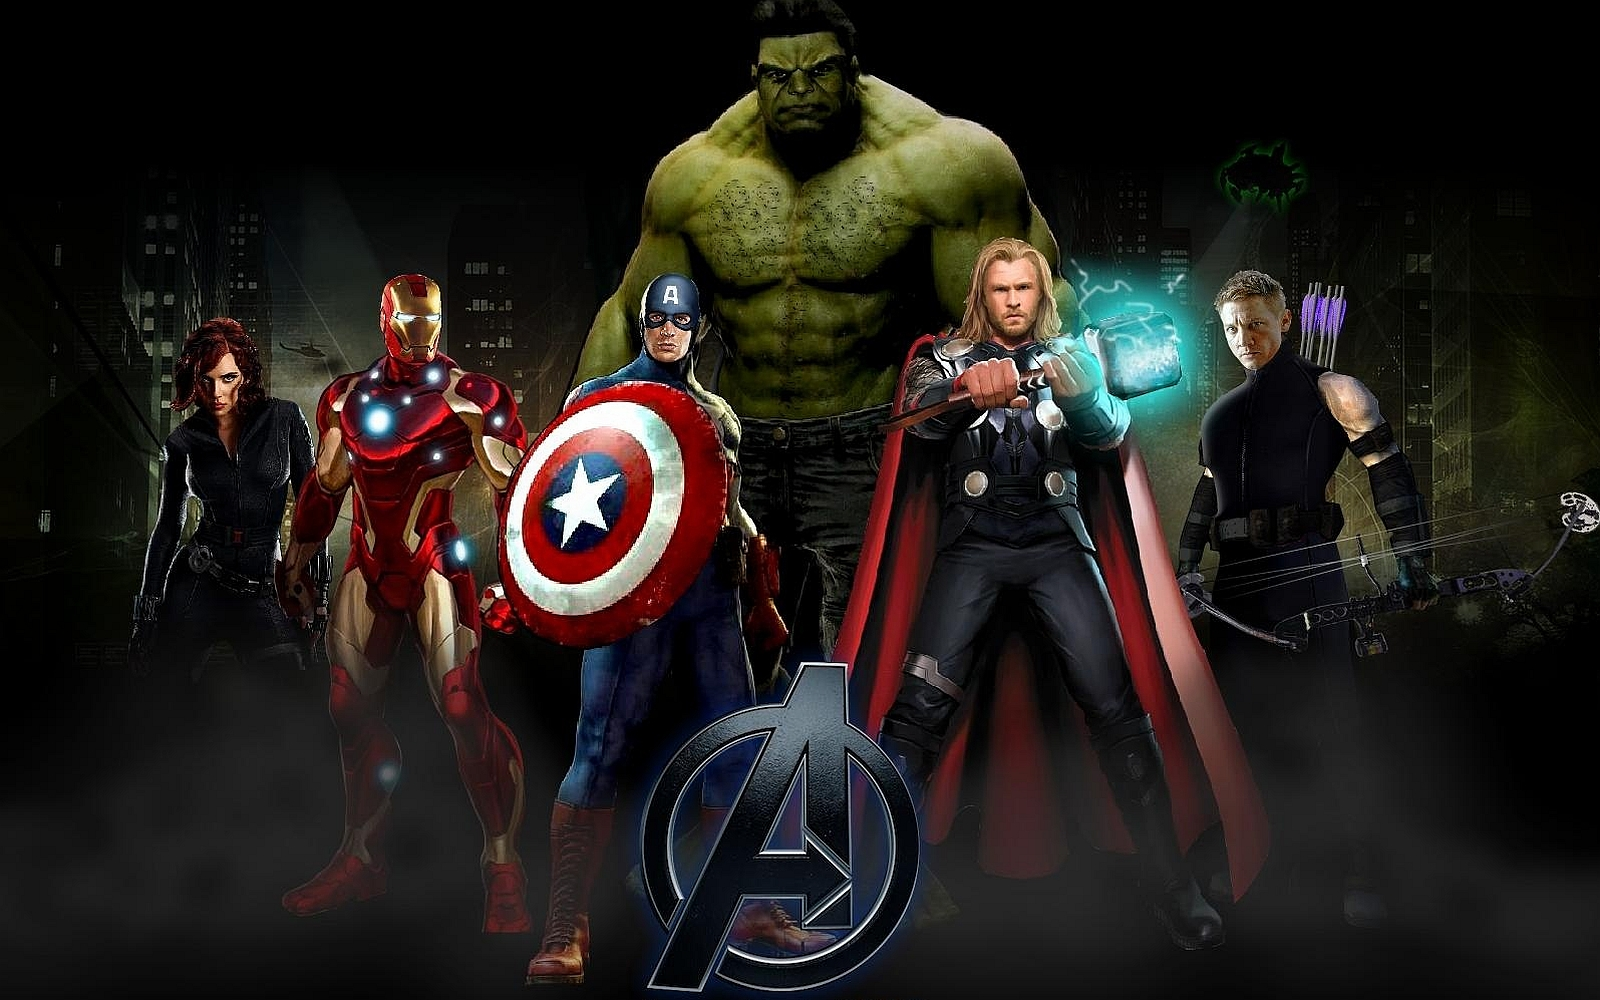 The Avengers Computer Wallpapers Desktop Backgrounds 1600x1000 ID 1600x1000